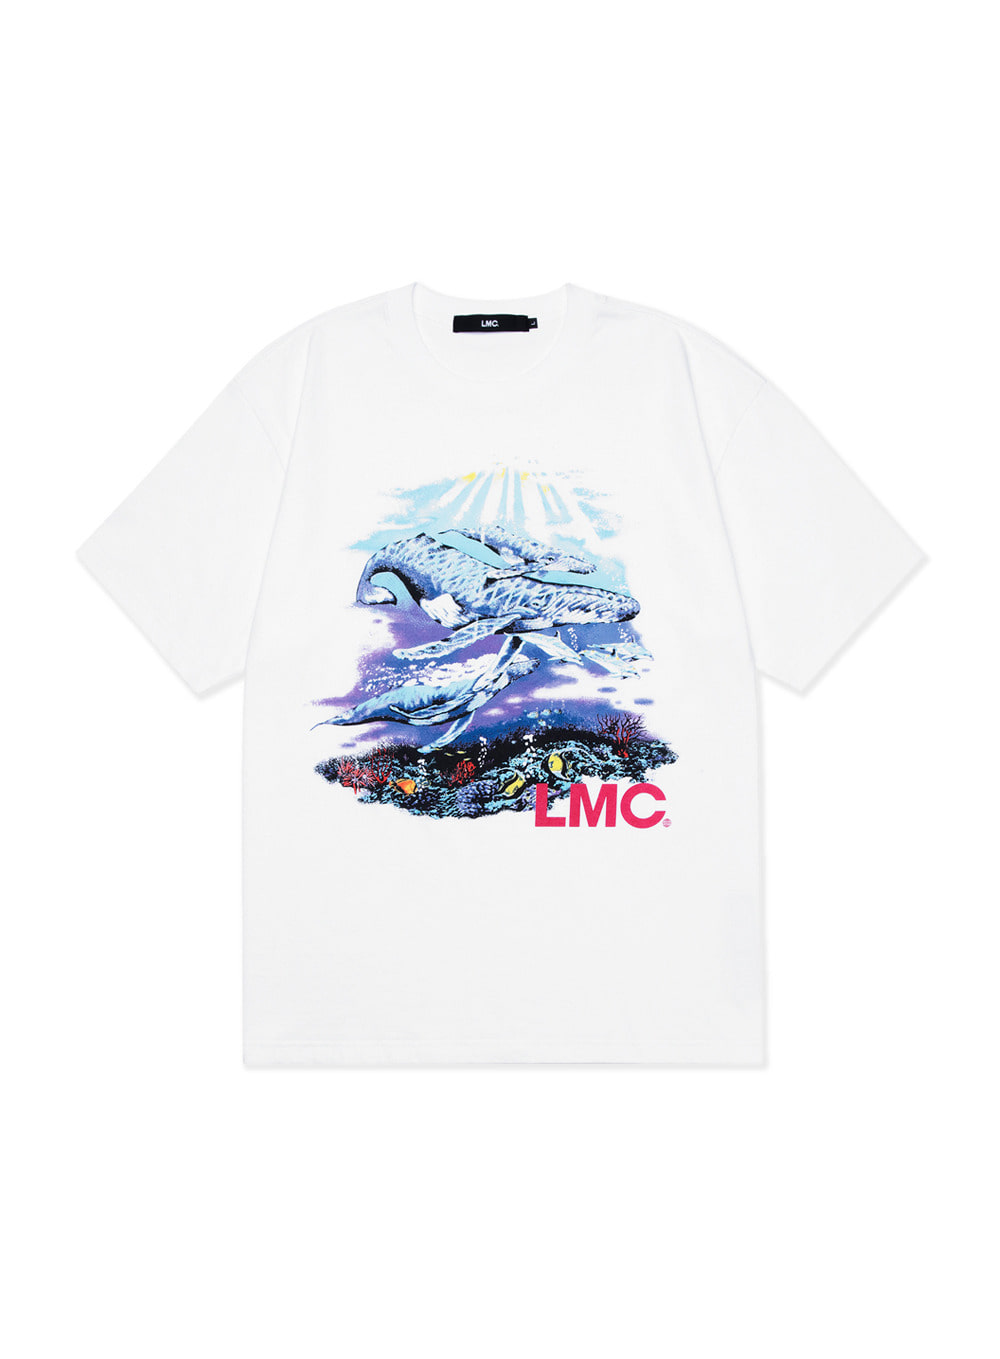 LMC SEAWORLD TEE white